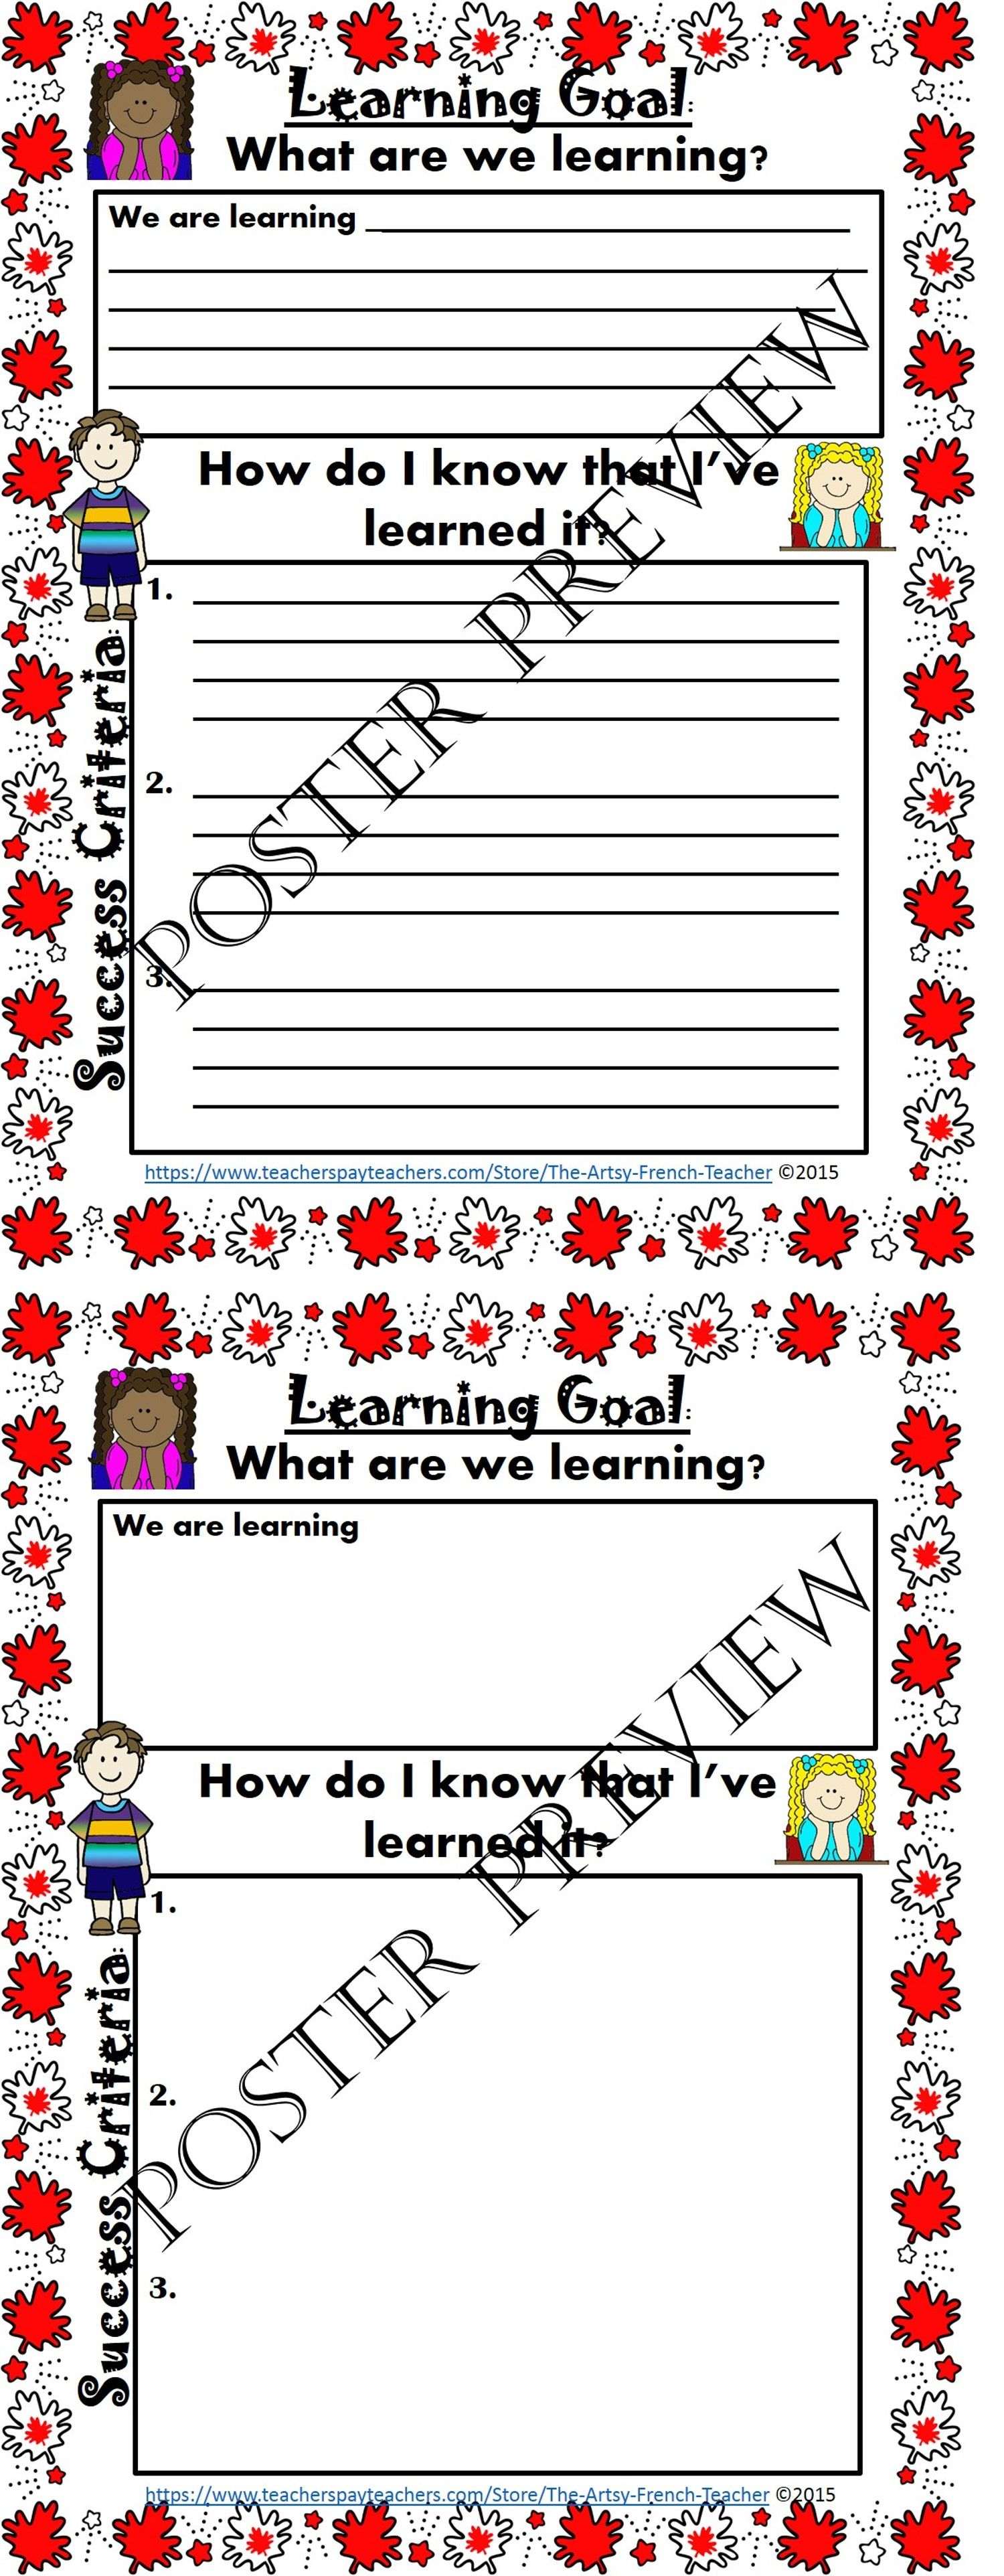 Ontario Learning Goal Poster  Engage Your Whole Class In Creating